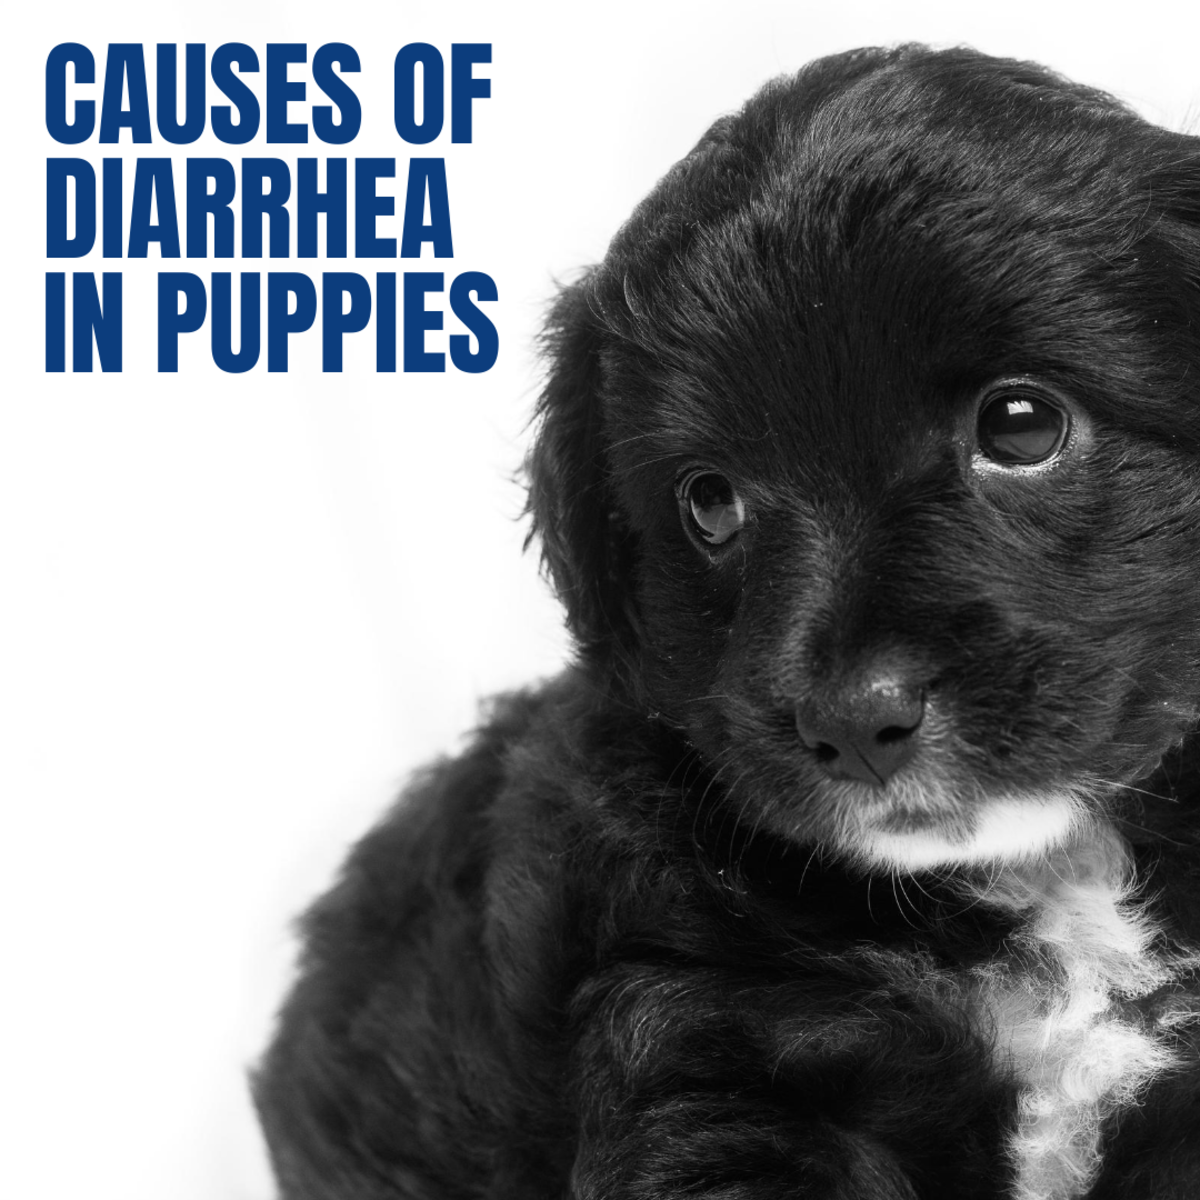 What Causes Diarrhea in Puppies?